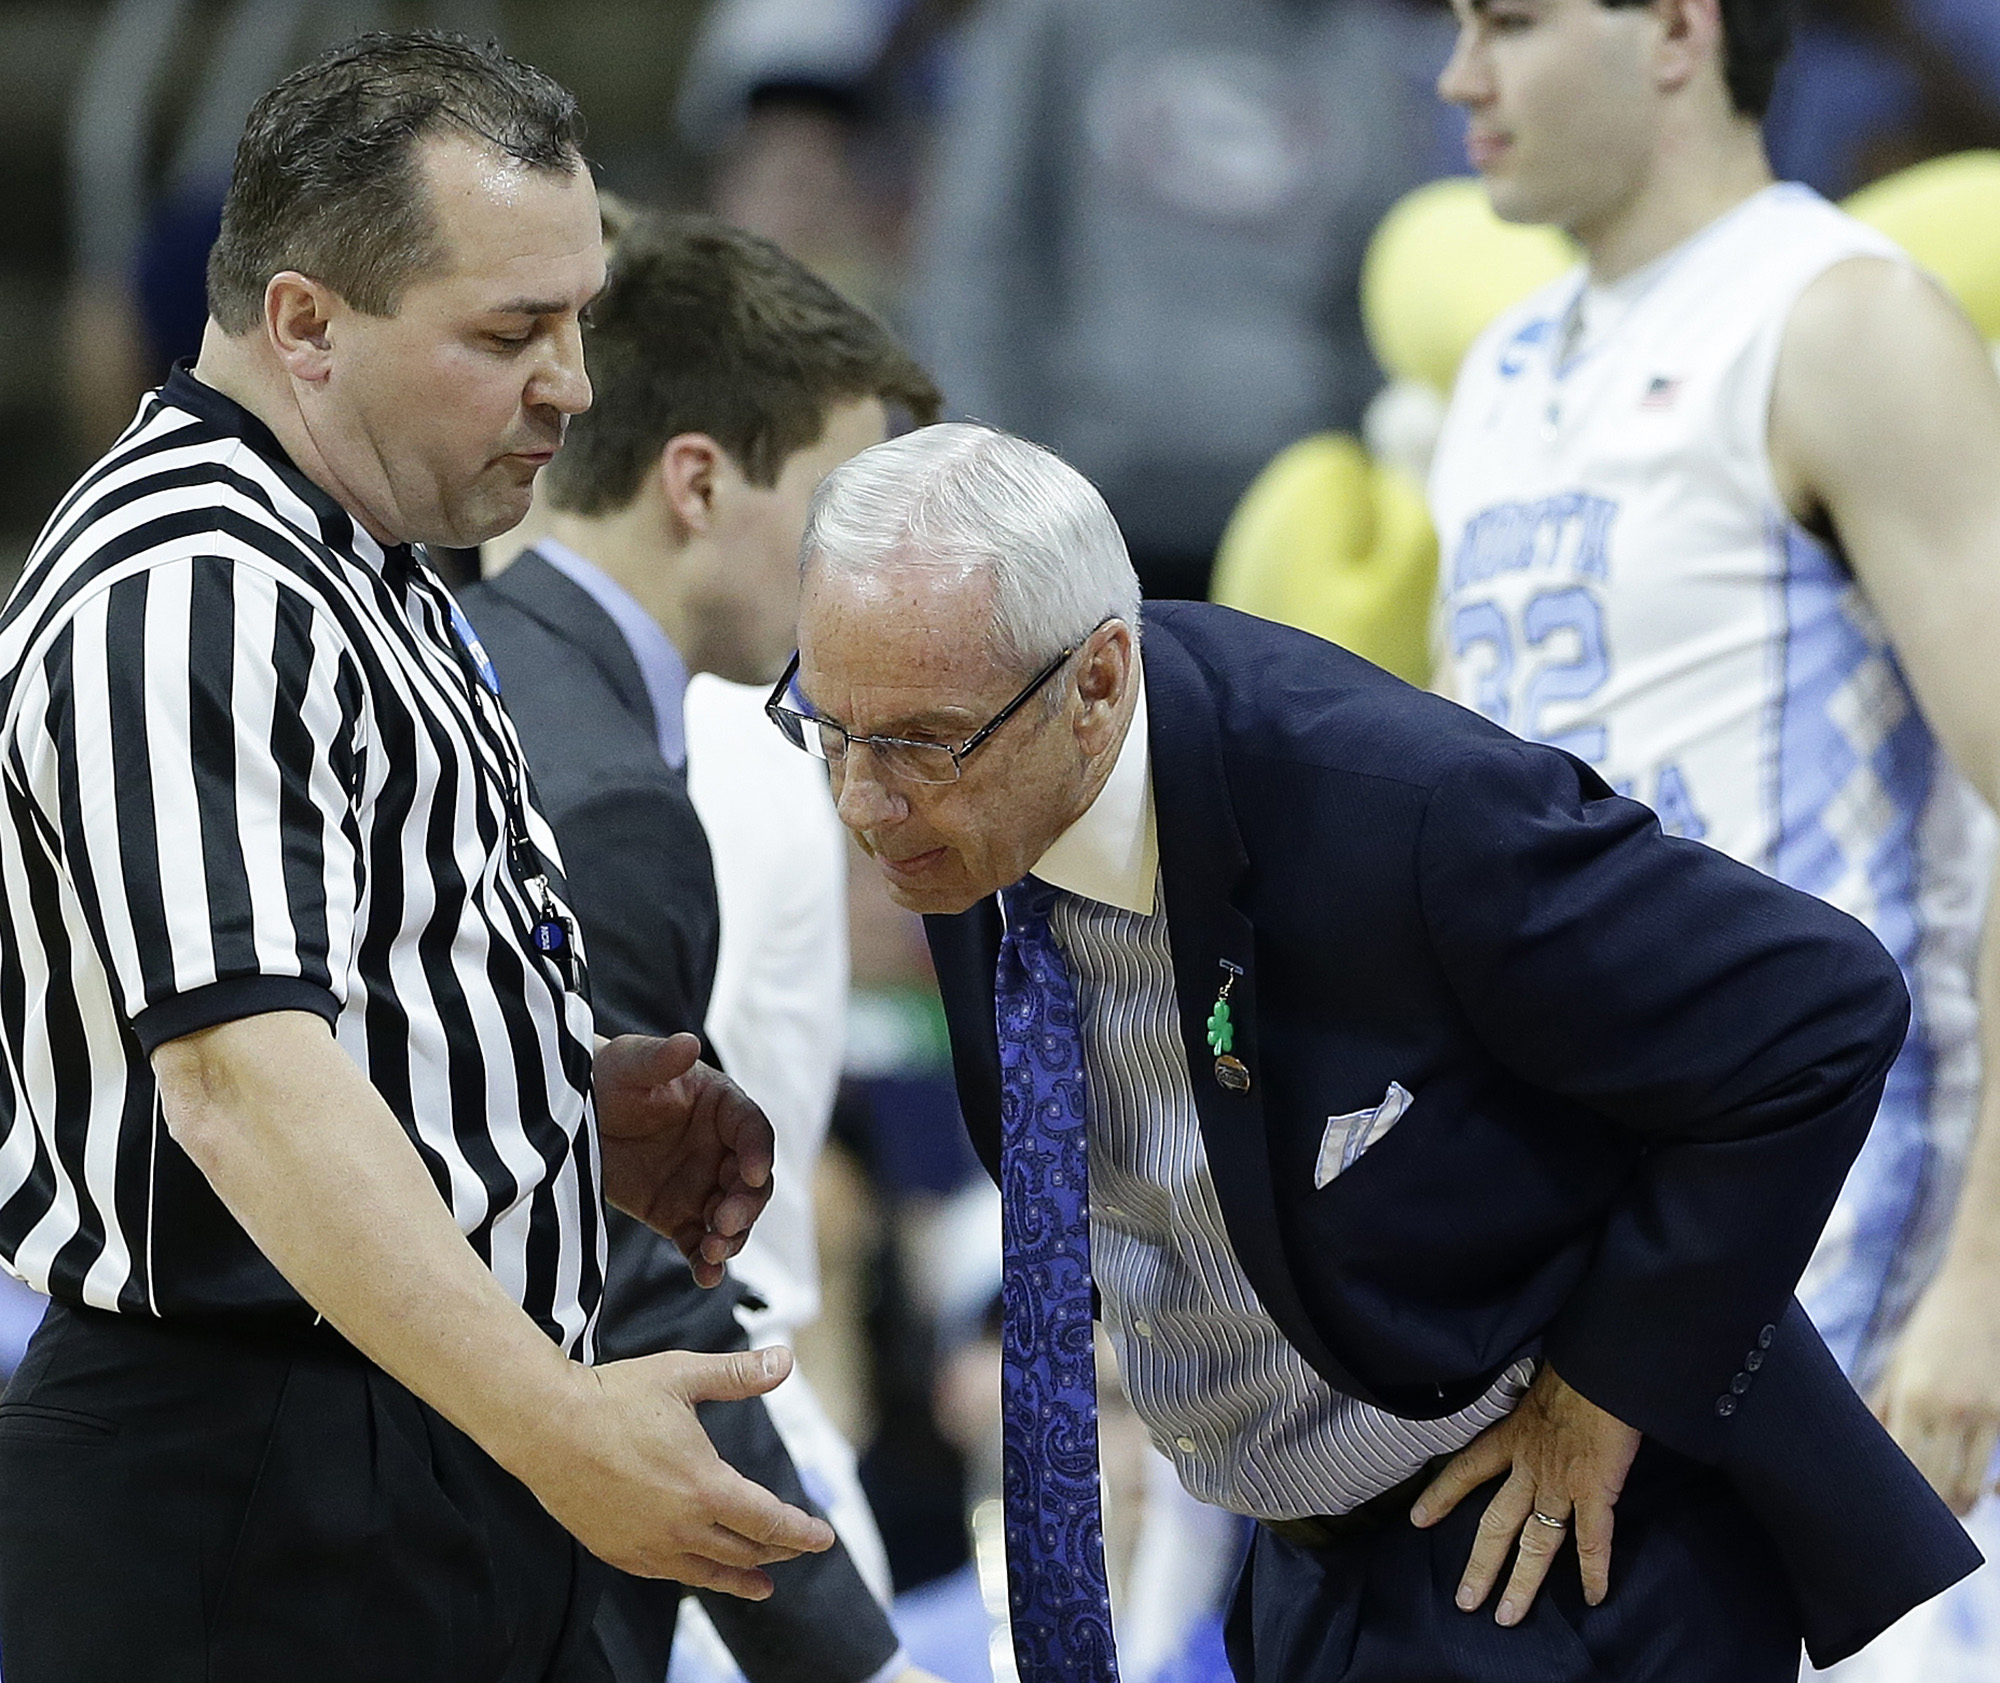 North Carolina head coach Roy Williams speaks to an official during the first half of a first-round men's college basketball game in the NCAA Tournament against Florida Gulf Coast, Thursday, March 17, 2016, in Raleigh, N.C. (AP Photo/Gerry Broome)